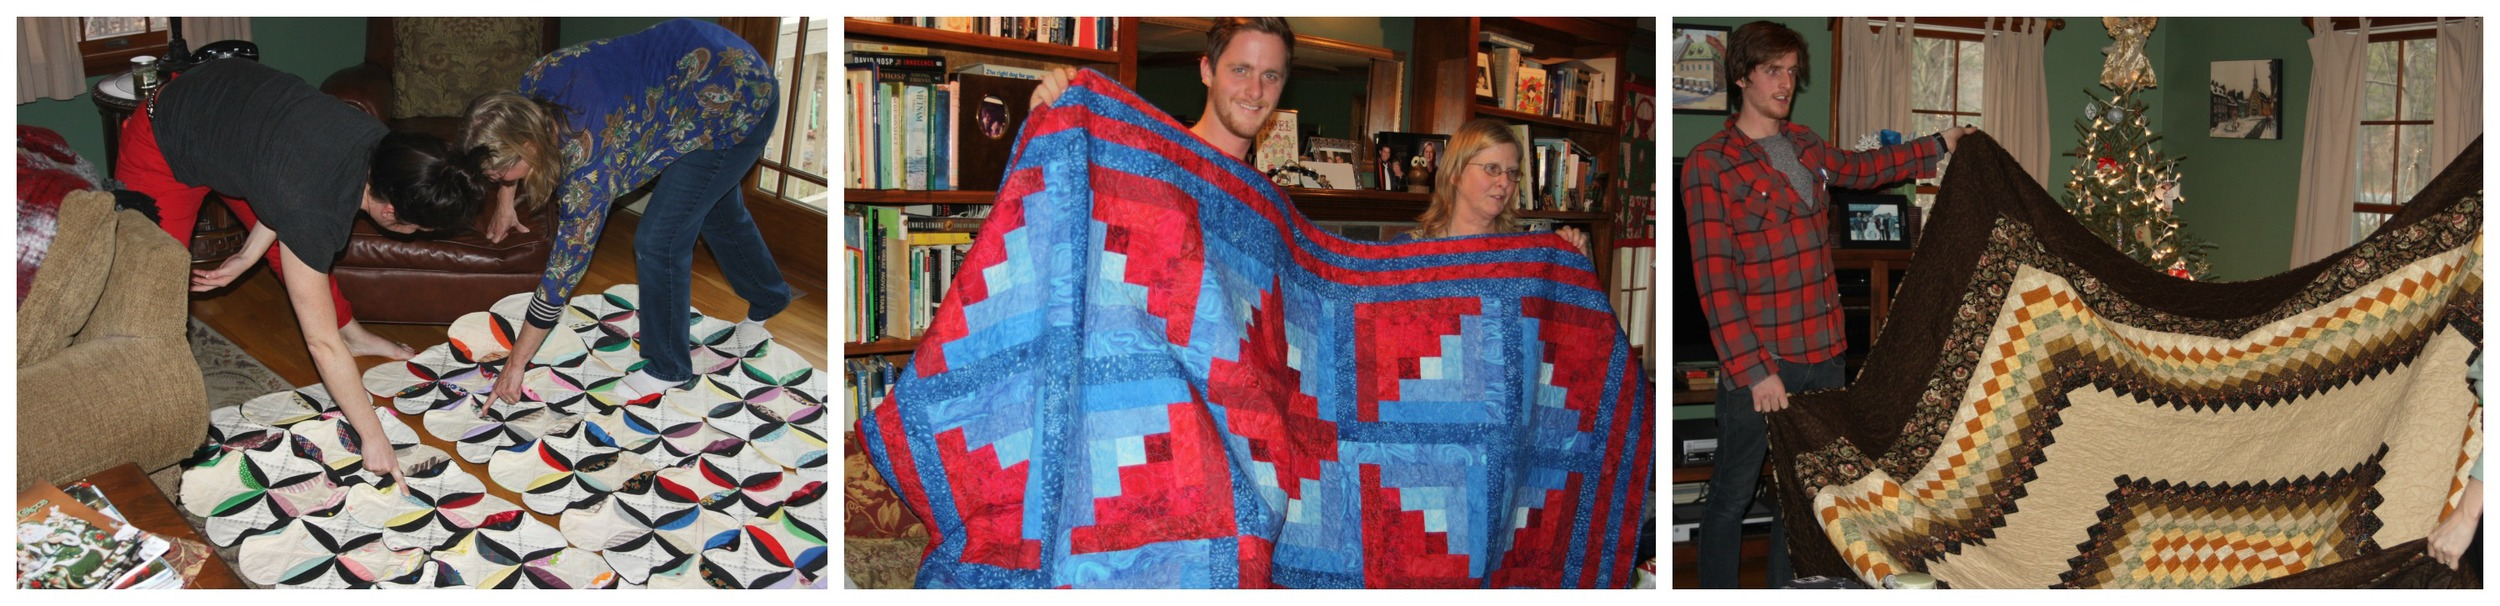 Meghan, Kevin, and Peter seeing their quilts for the first time.